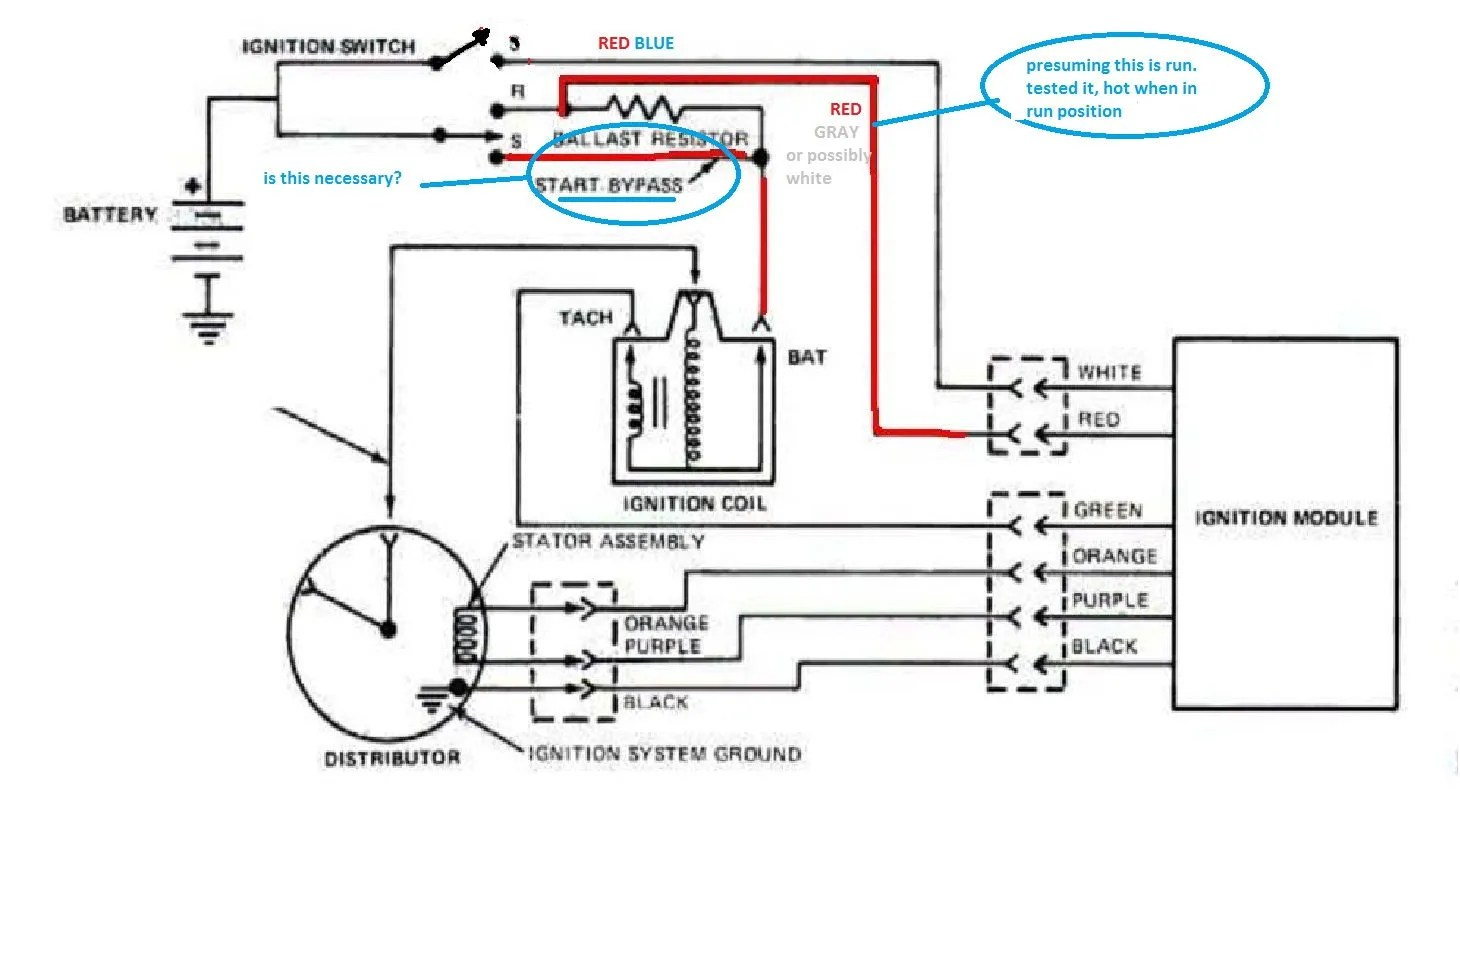 hight resolution of gm hei ignition wiring diagram gm free engine image for gm hei wiring schematic gm hei coil in distributor cap wiring diagram